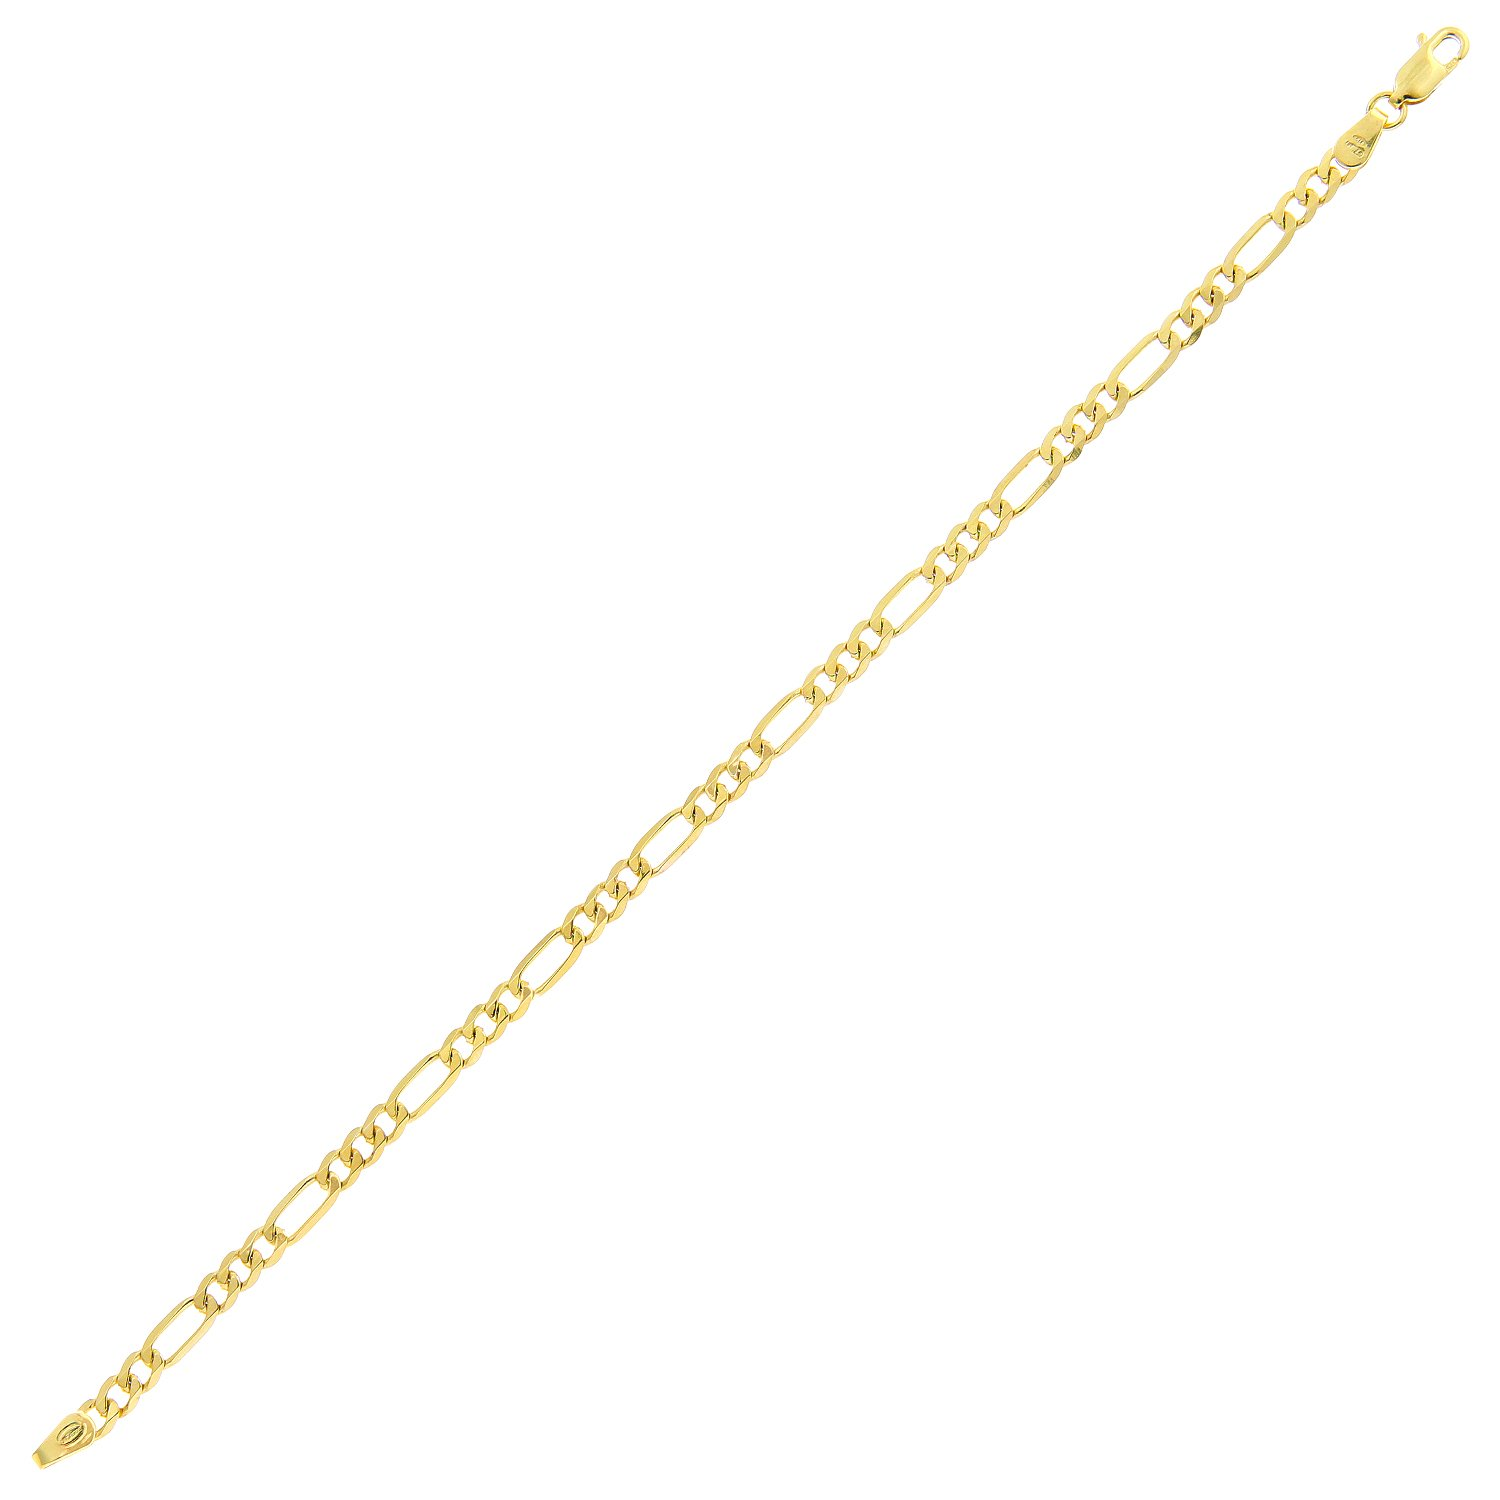 Fine Jewellery Persevering 9ct White Gold & 9ct Yellow Gold Bracelet 100% Guarantee